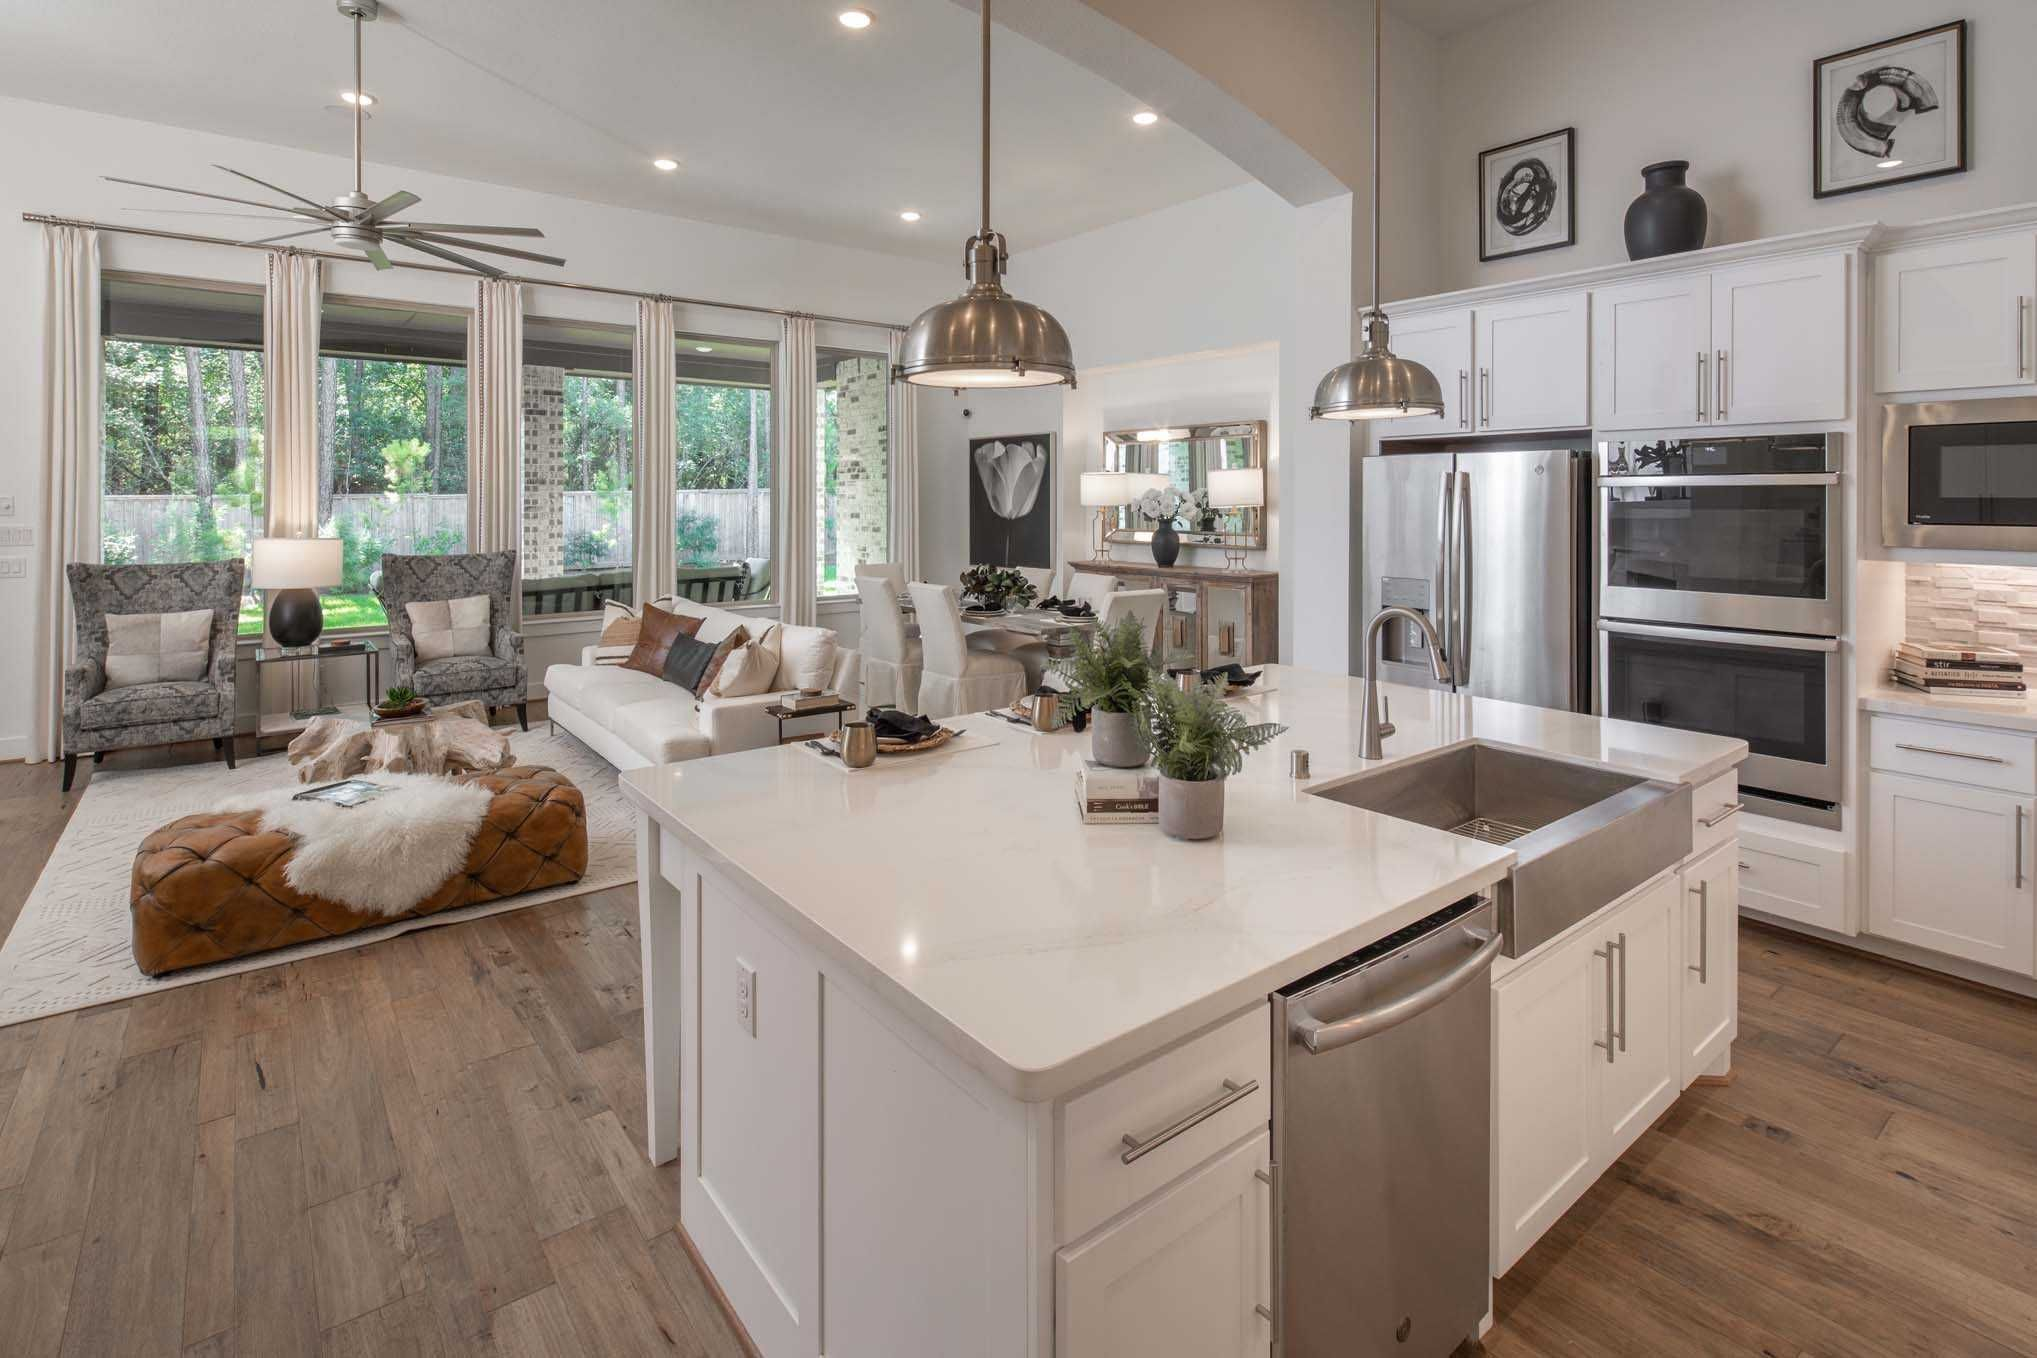 Highland Homes 272 Plan Conroe Tx The Woodlands Hills Community Kitchen Highland Homes New Home Builders Home